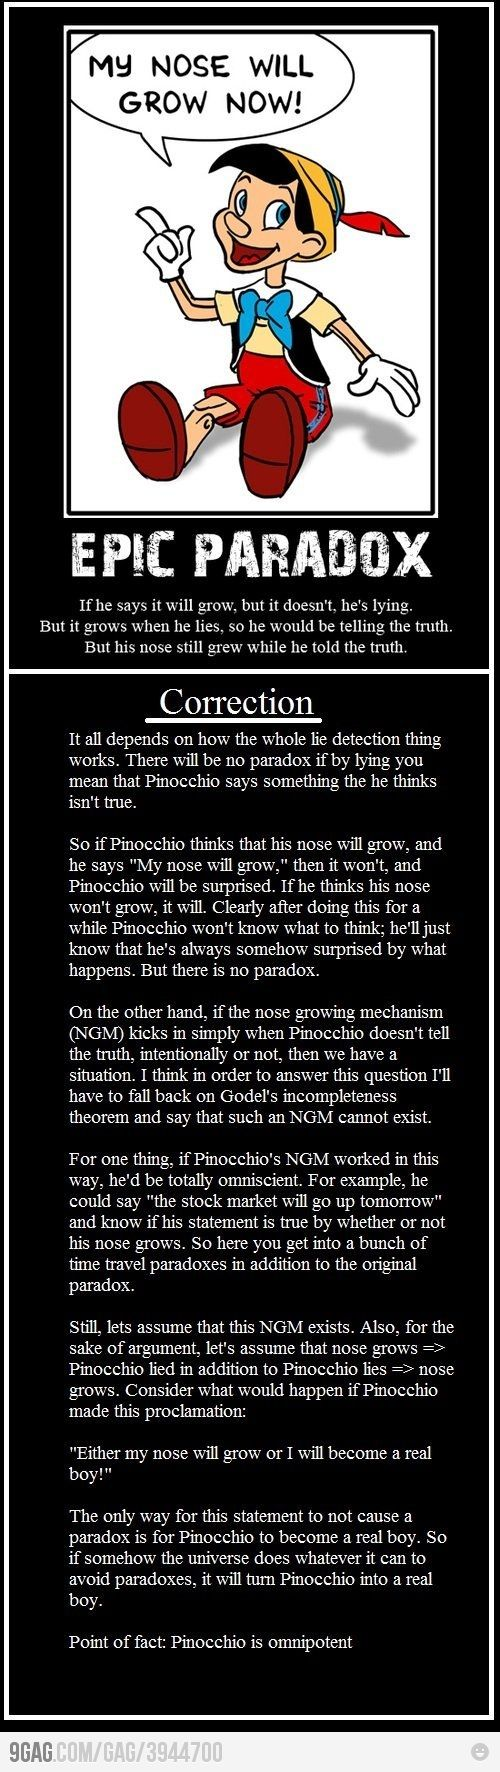 Proof that Pinocchio is omnipotent!